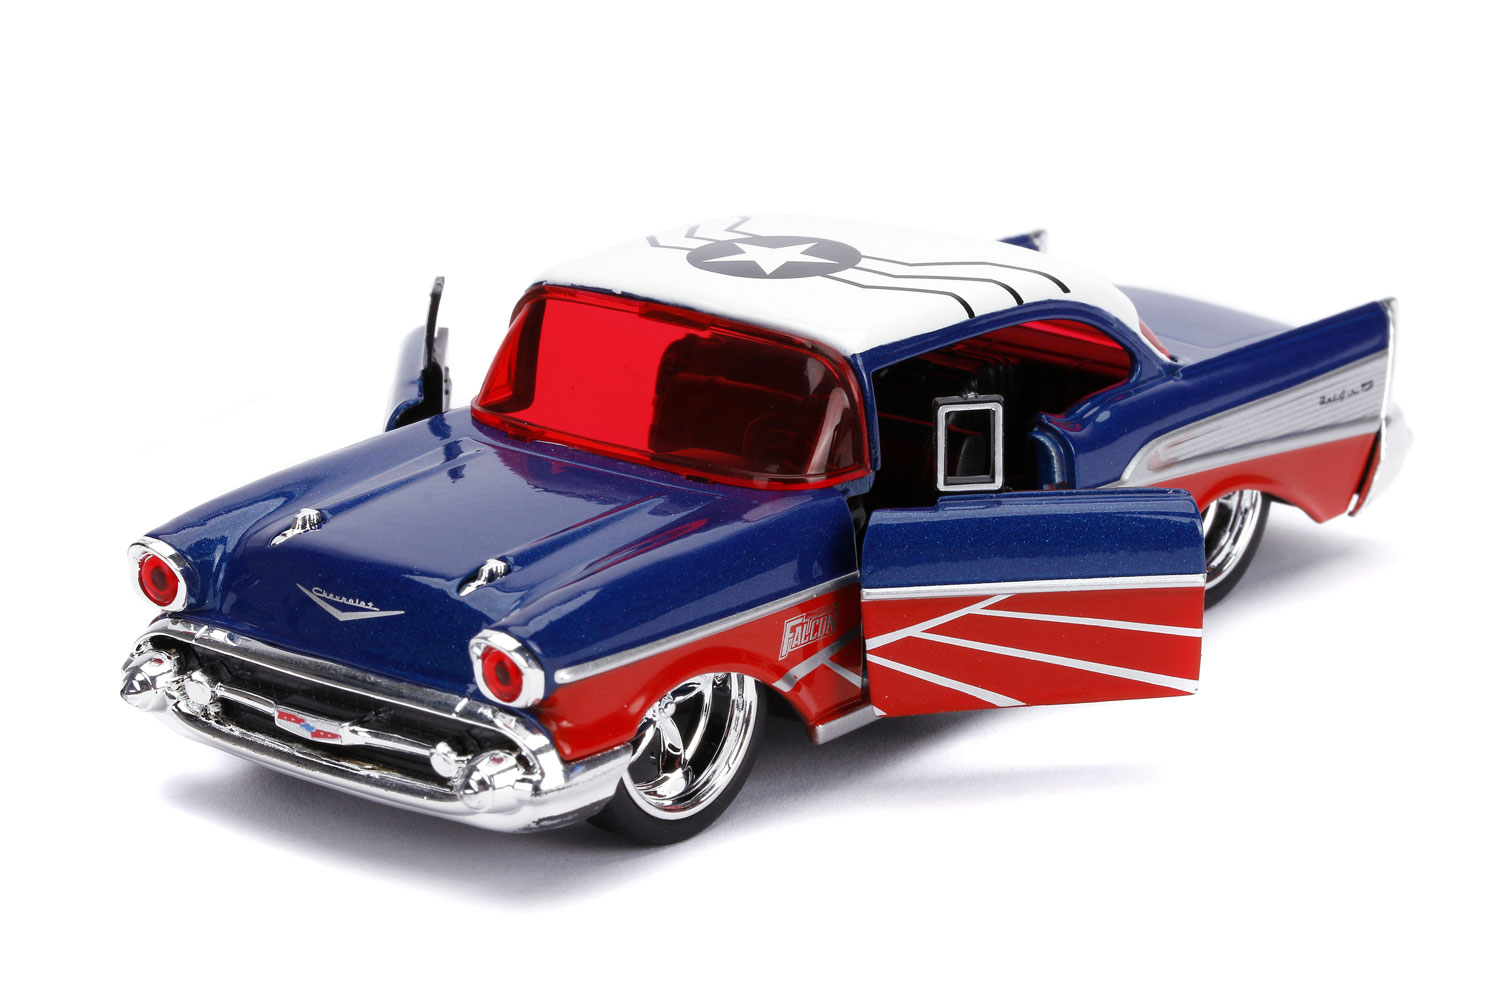 Marvel Vehicle: Falcon 1957 Chevy Bel Air  (1/32 scale) - Jada Toys, Inc